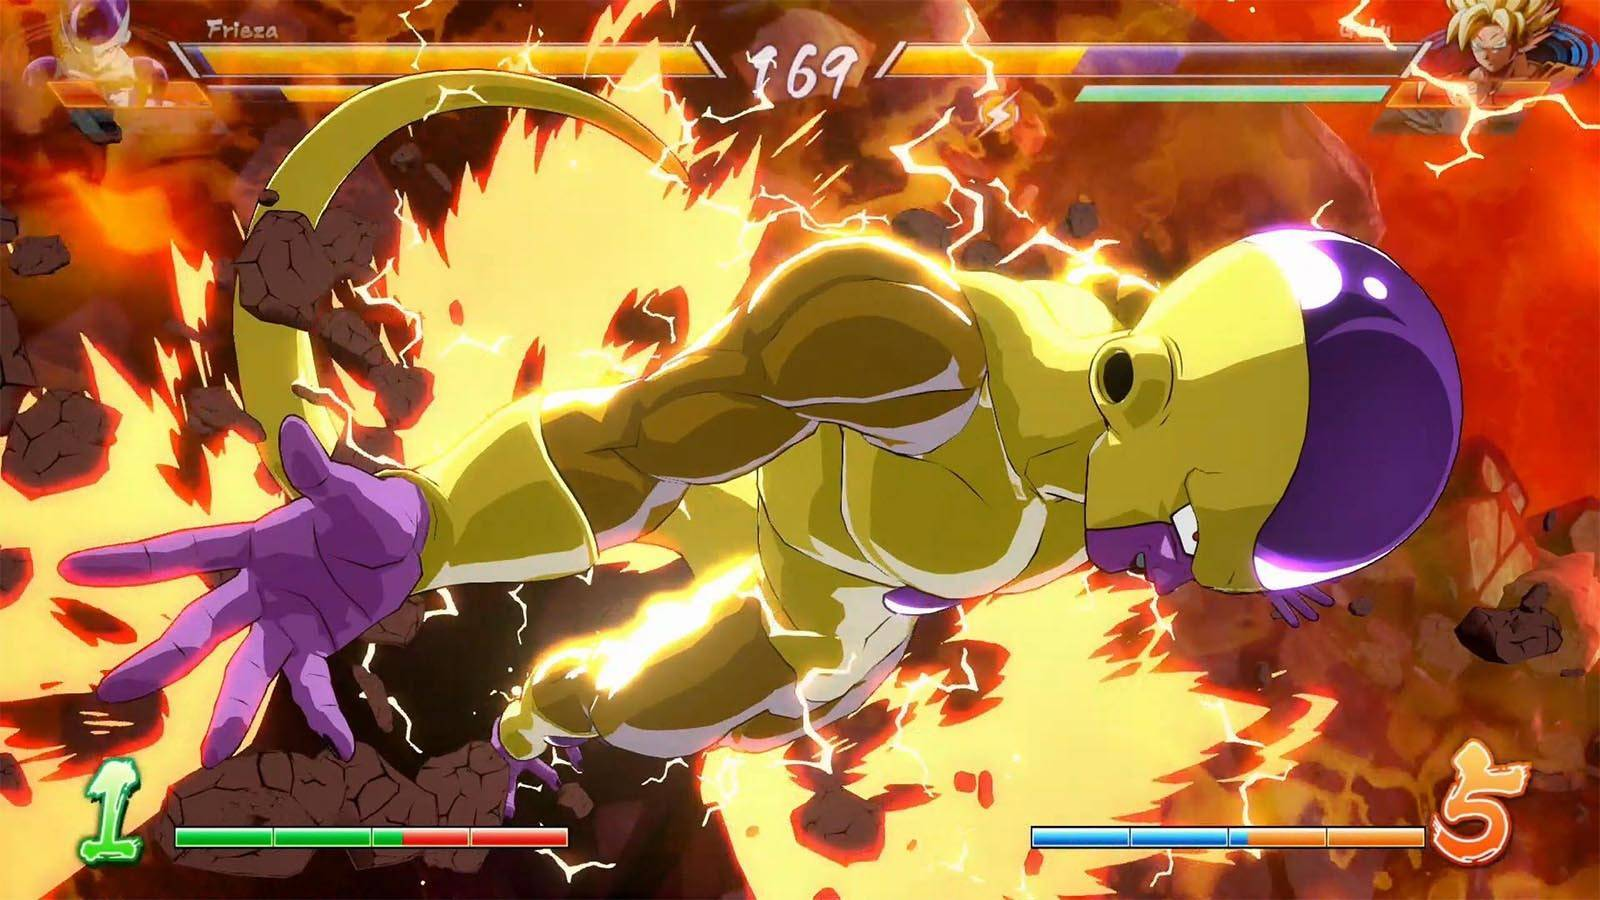 Titel des Artikels überDRAGON BALL FighterZ